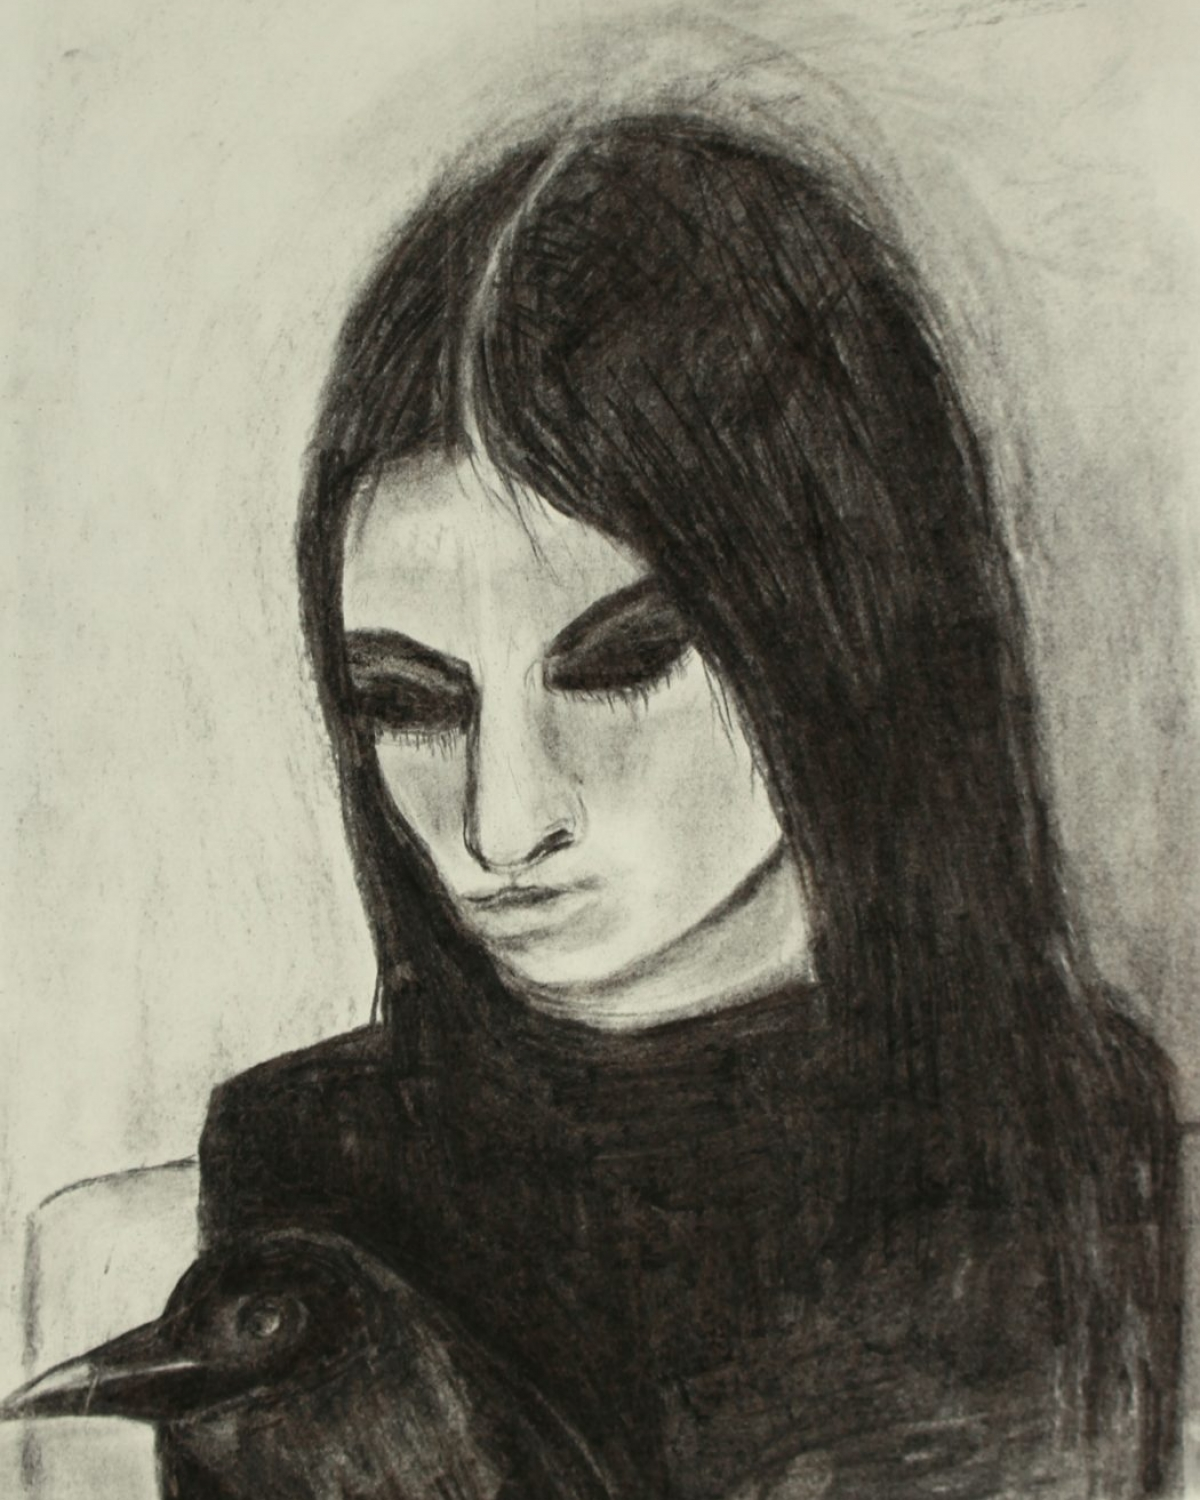 15. Girl with Raven